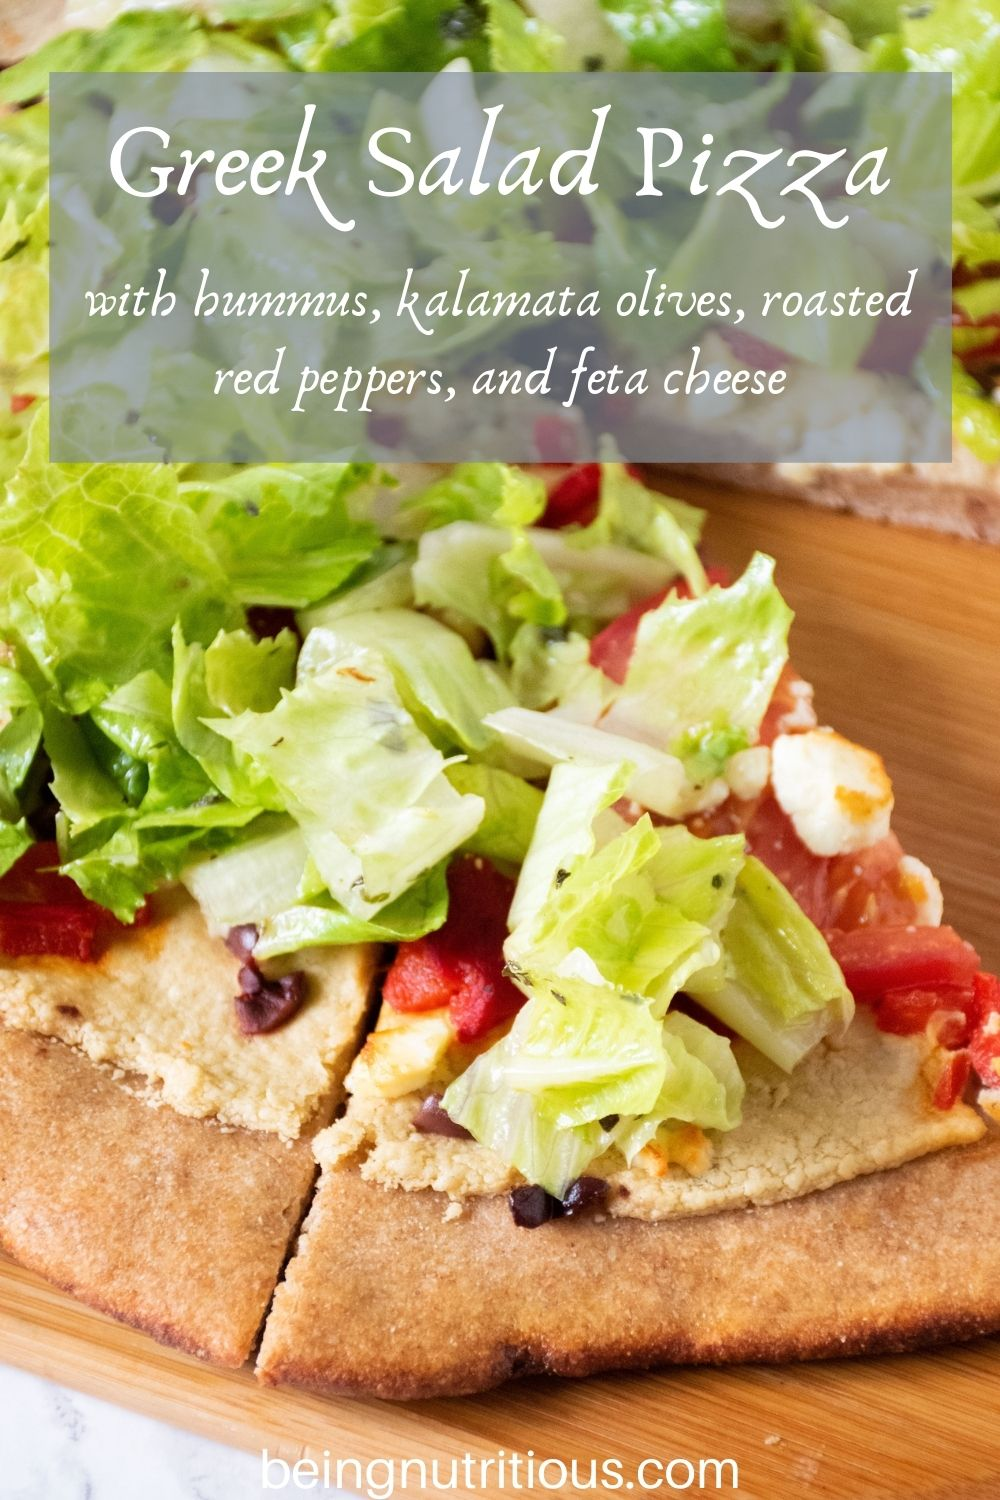 Pizza on a peel, with whole wheat crust, topped with salad. Text overlay: Greek Salad Pizza with hummus, kalamata olives, roasted red peppers, and feta cheese.